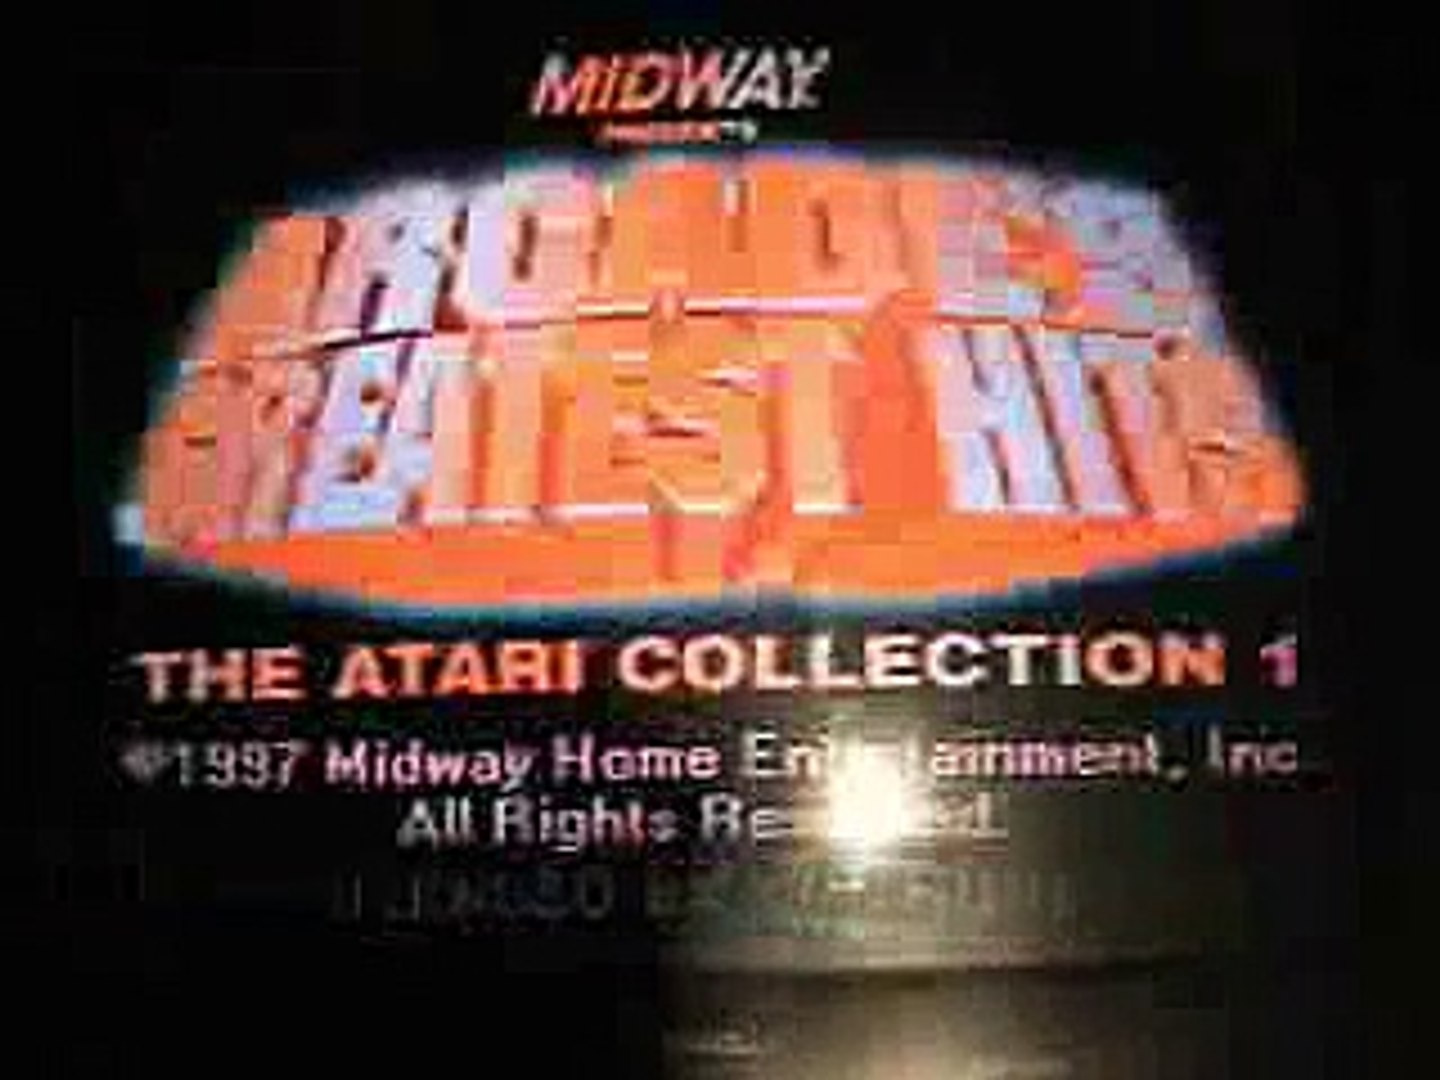 Midway Arcade's Greatest Hits  The Atari Collection 1  super nintendo SNES fun and funny